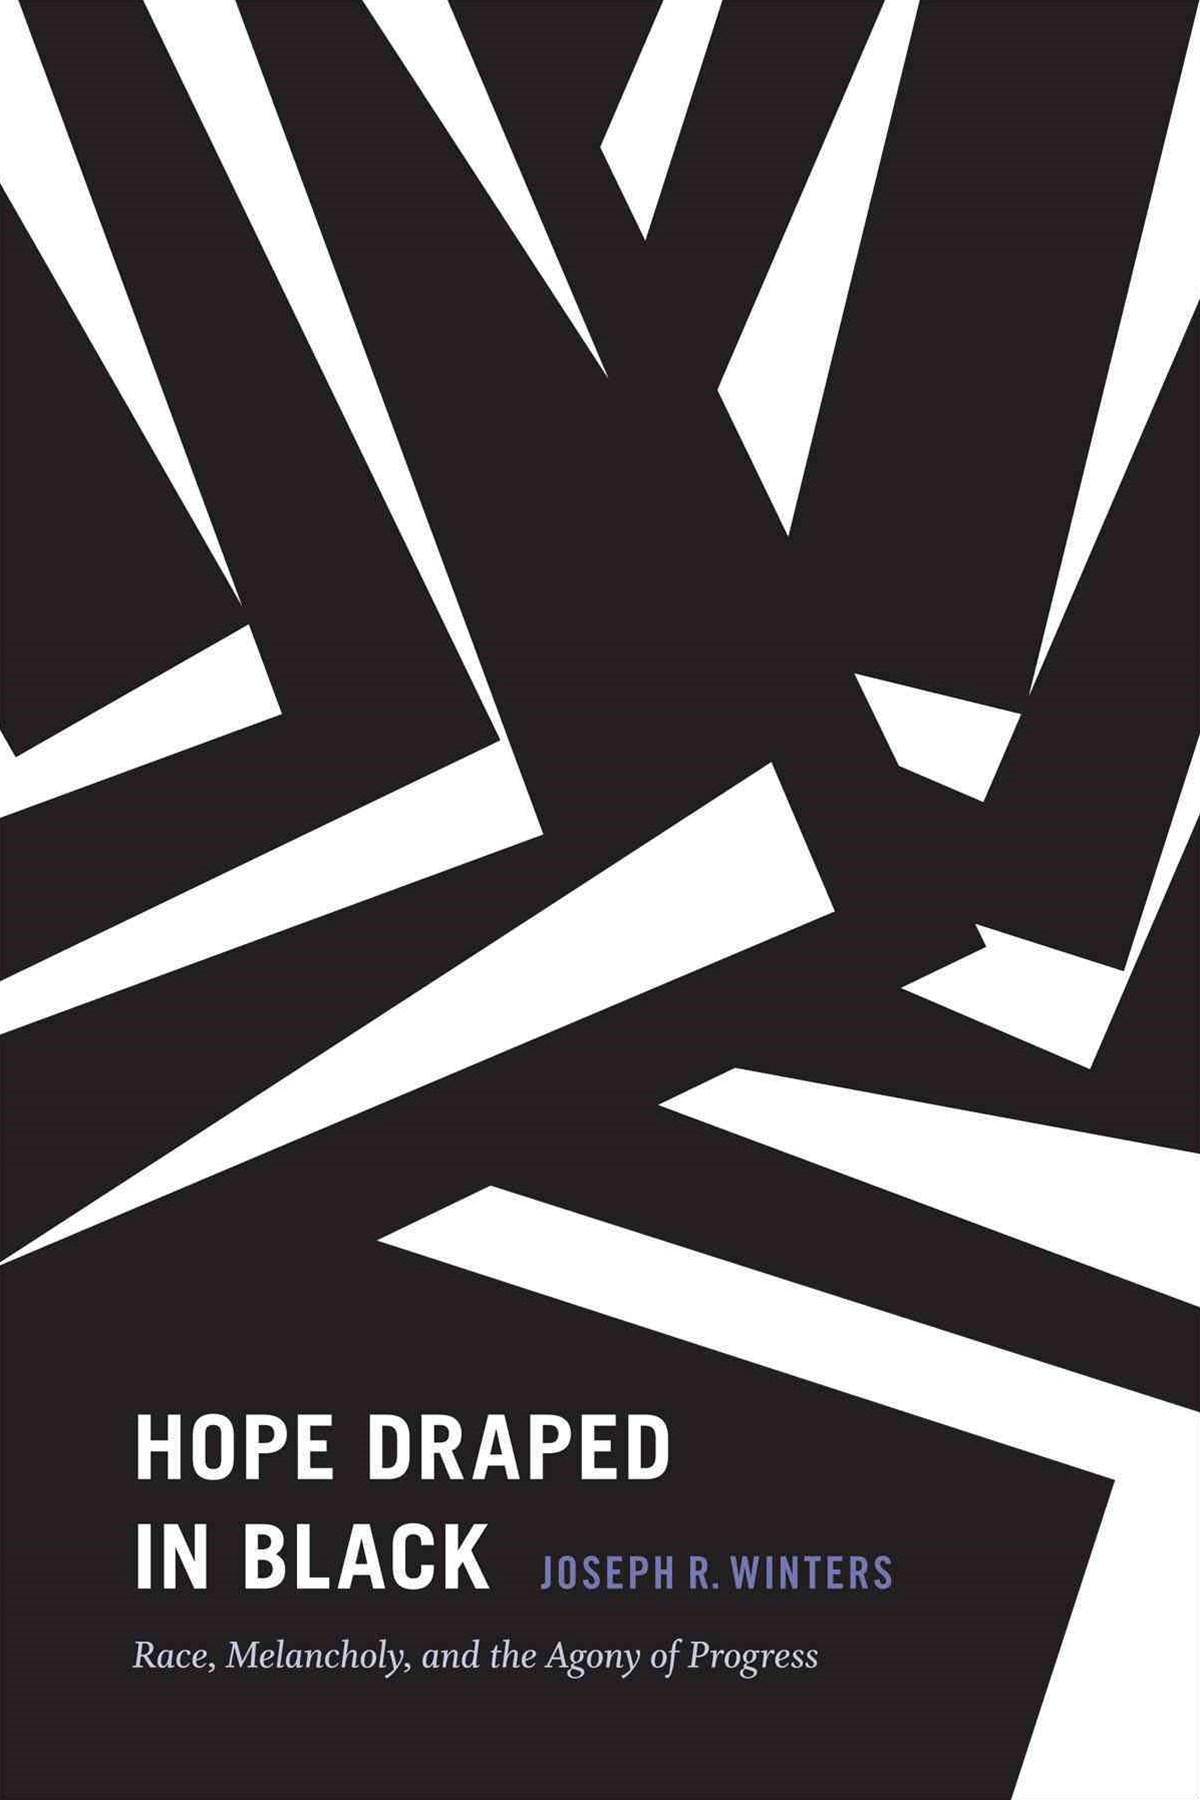 Hope Draped in Black